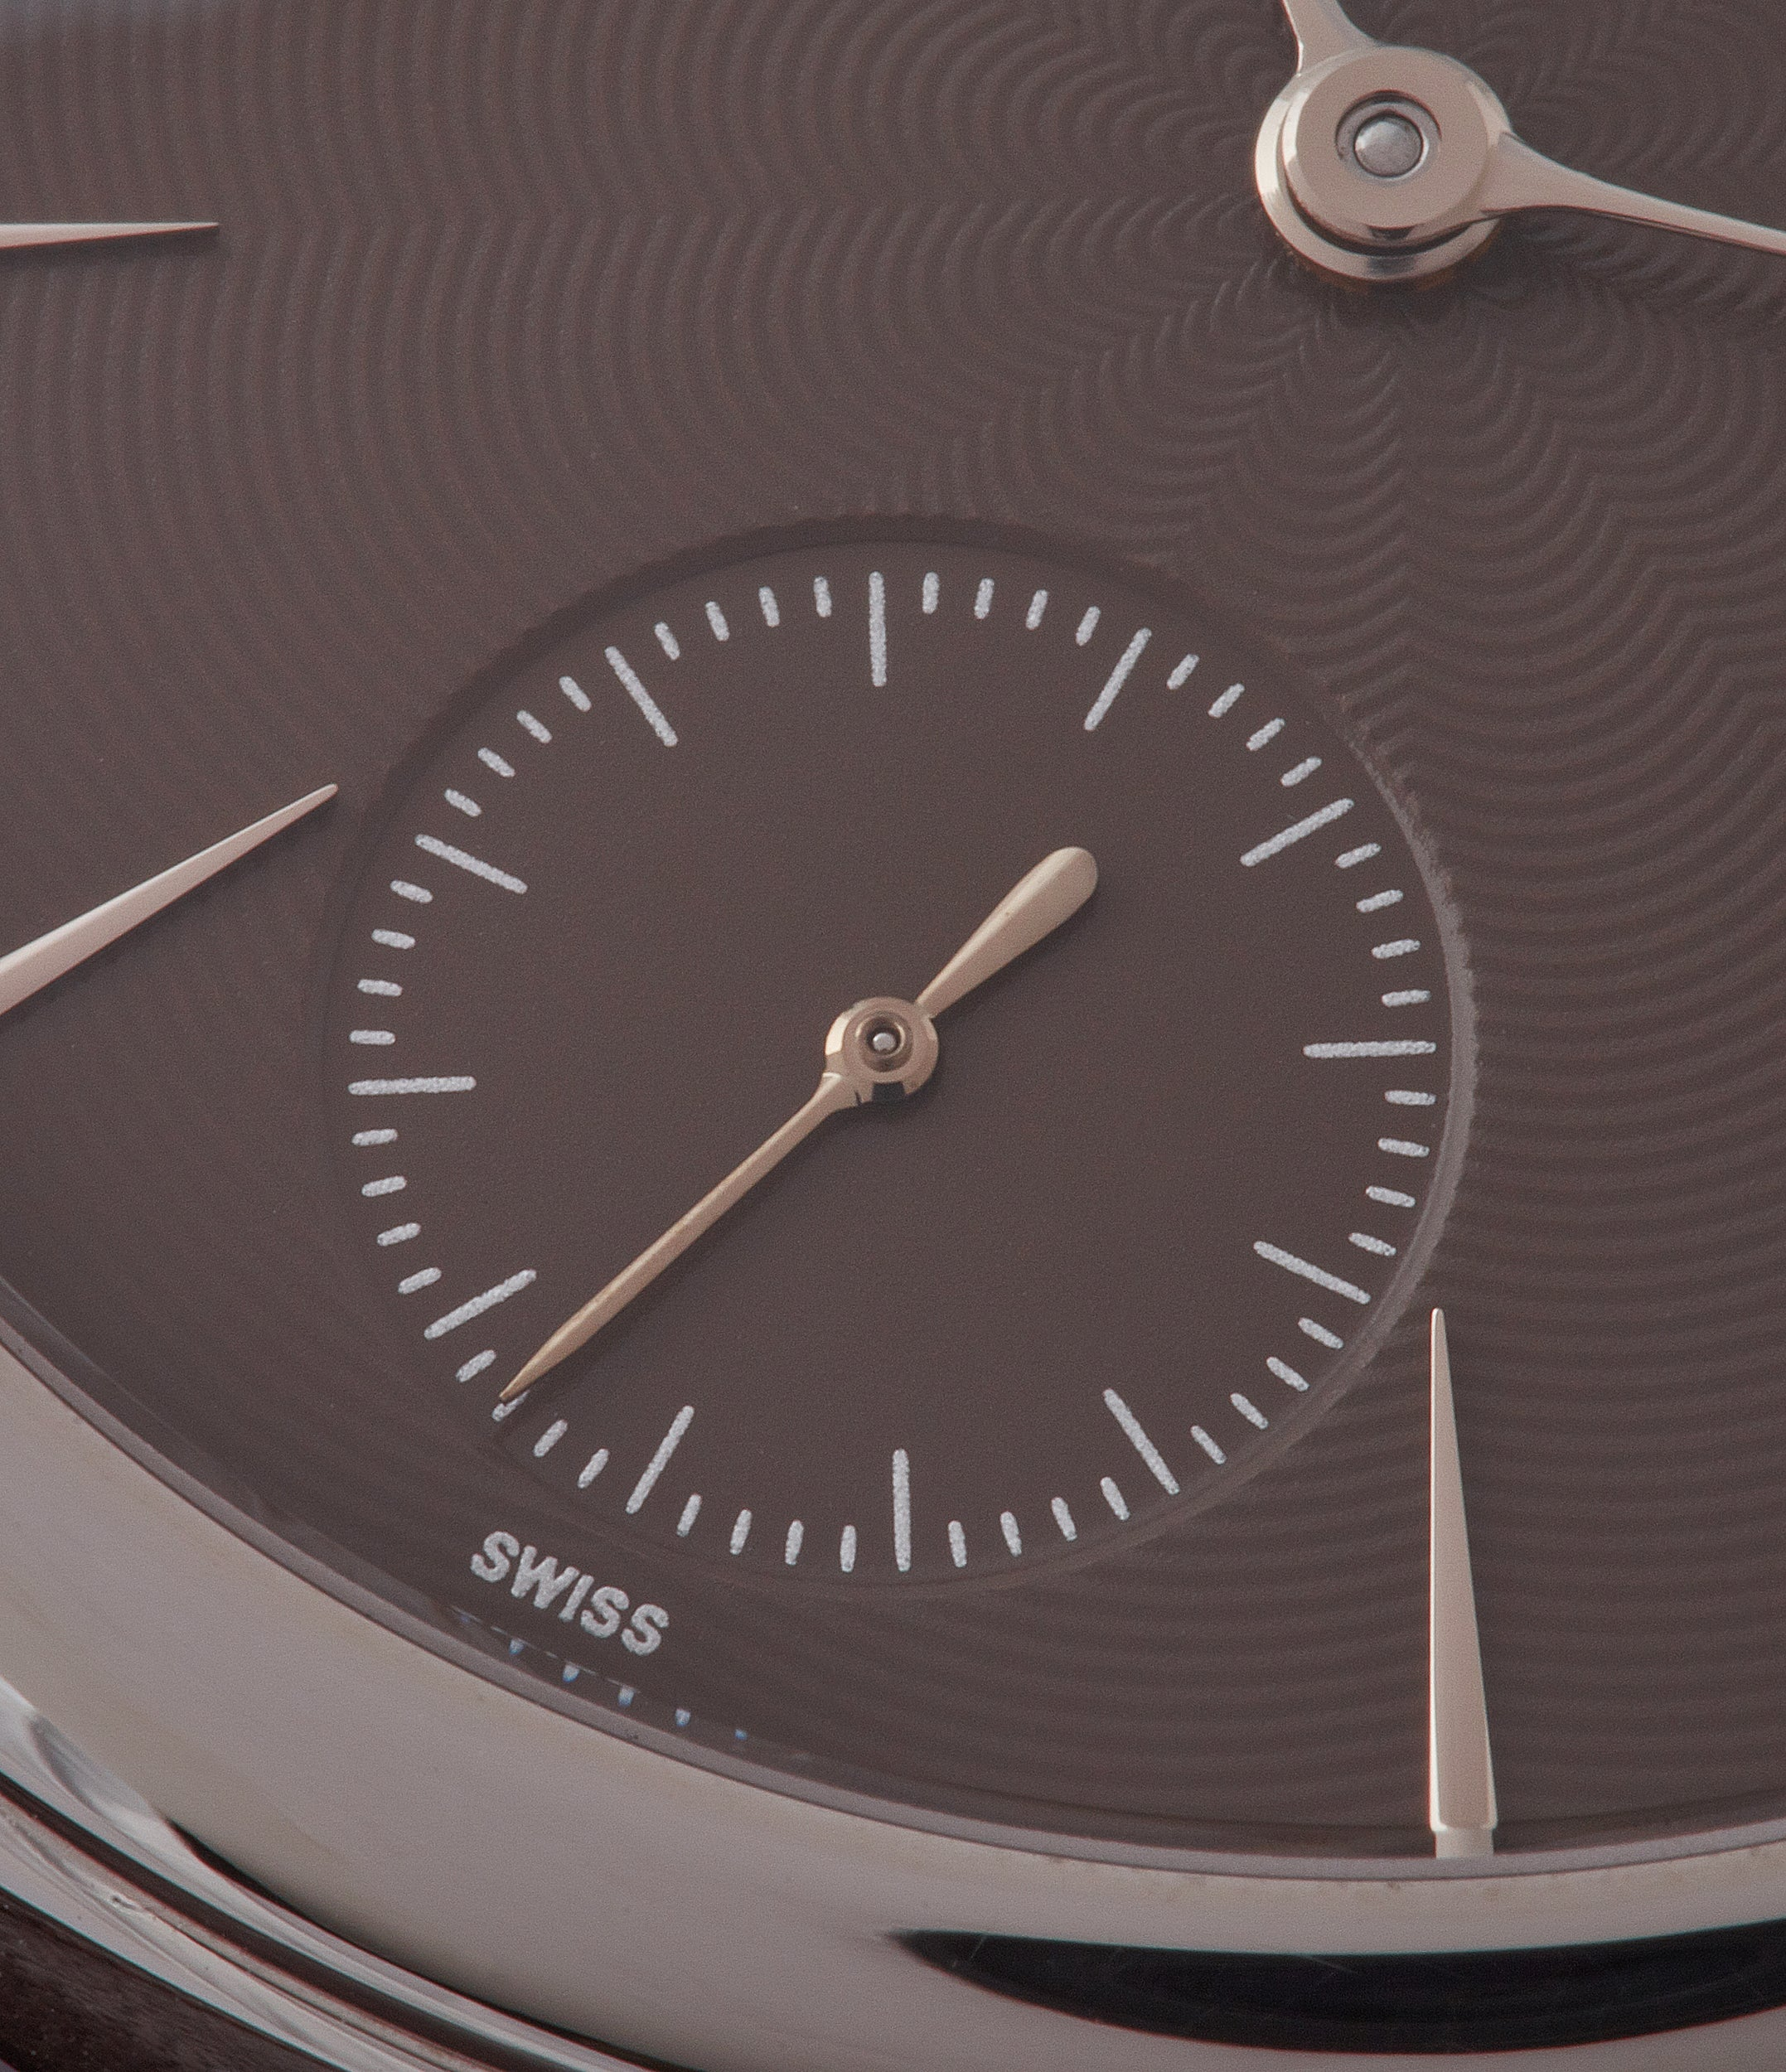 "brown dial Laurent Ferrier Prototype Galet Micro-rotor LF 229.01 ""Only Watch 2011"" steel watch for sale online at A Collected Man London UK approved seller of independent watchmakers"